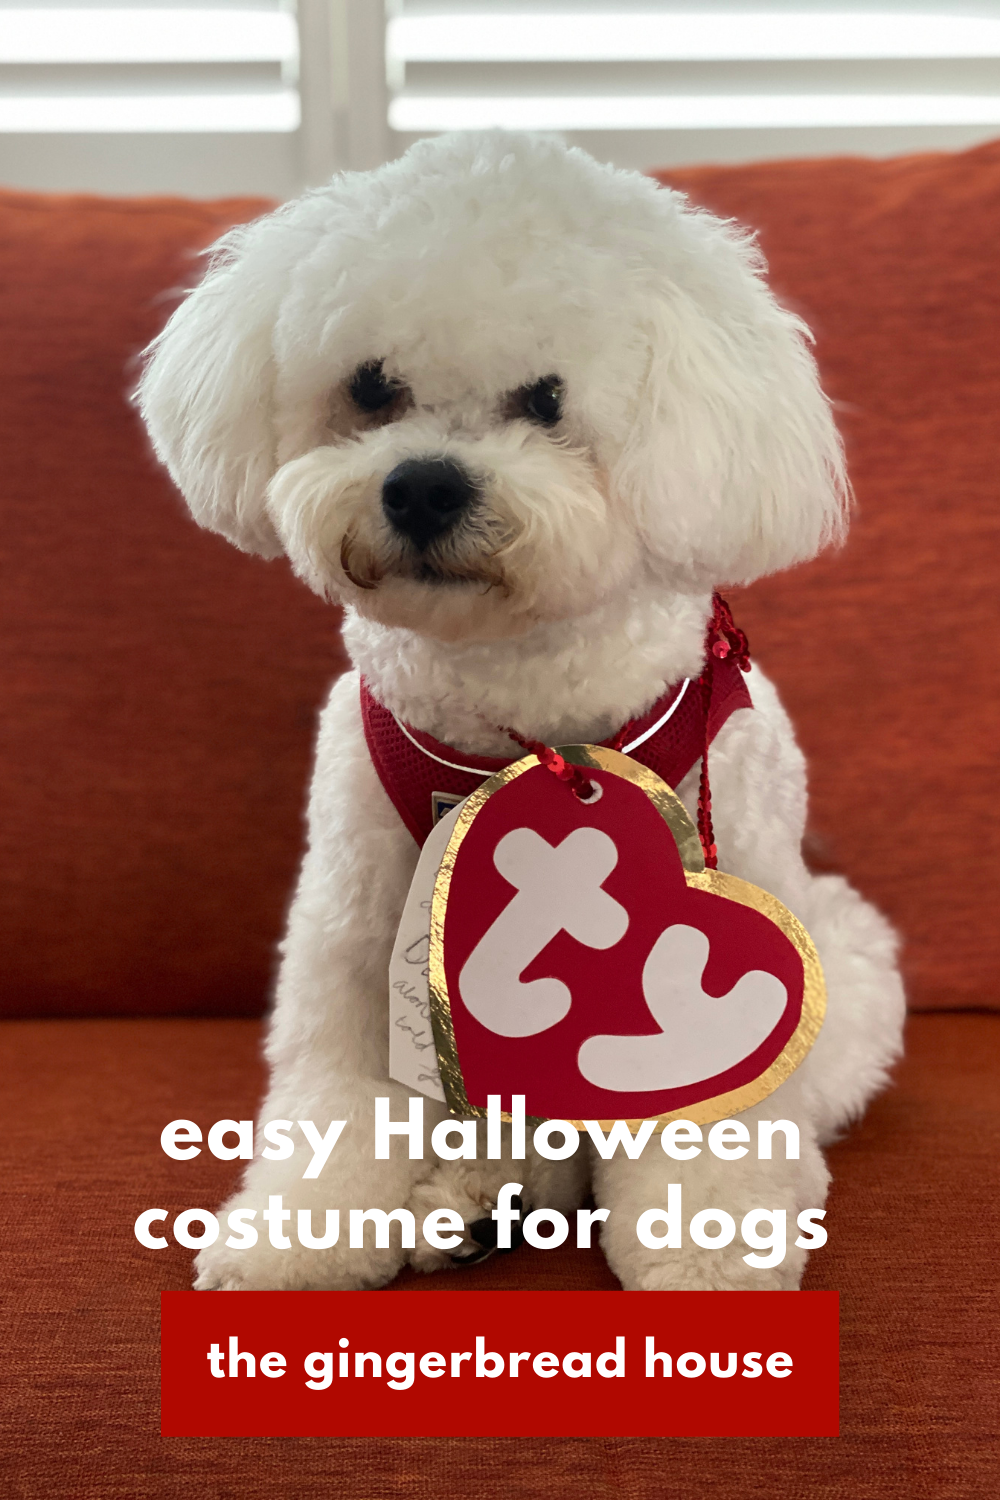 Easy Halloween costume for dogs